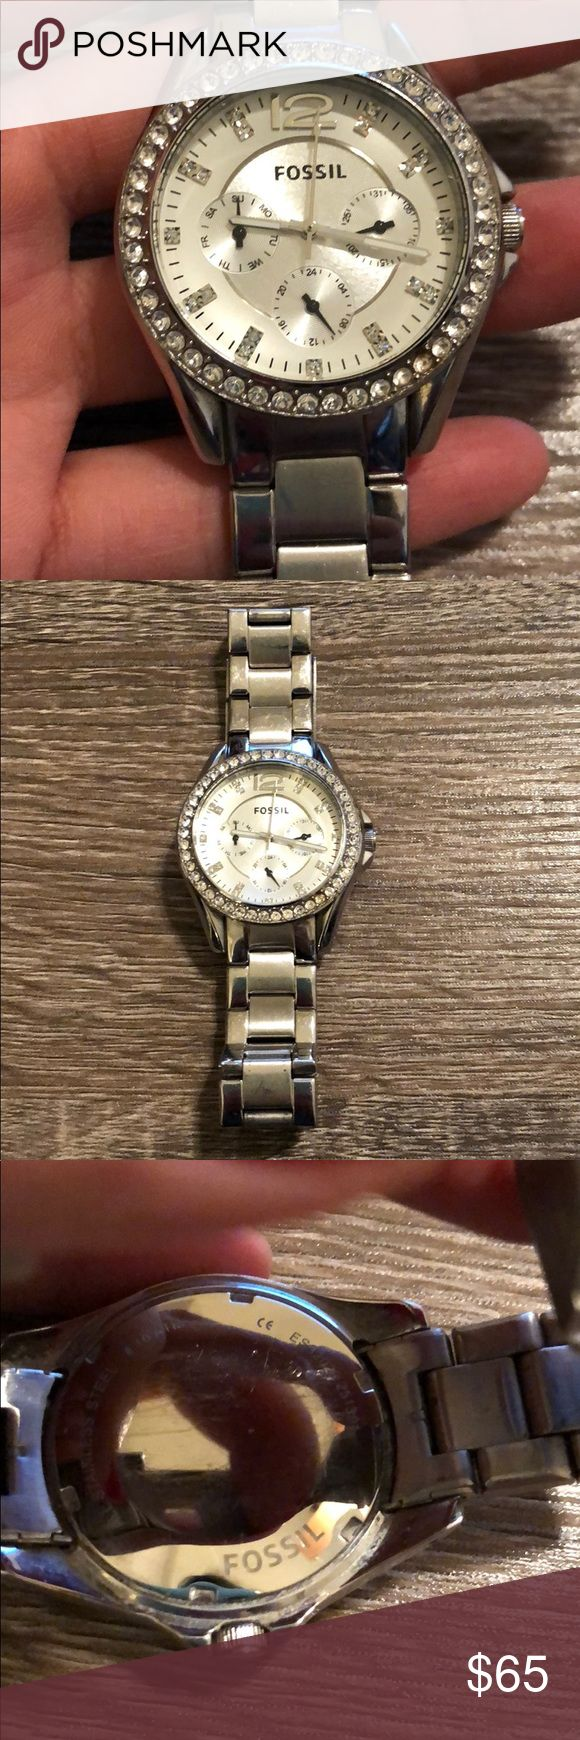 Ladies fossil watch Ladies Flossie watch in silver. Shiny rhinestone surround the face and are on the hour pieces.  Battery is dead but can be replaced at a fossil or mall vendor for like $5. Fossil also has a 17 year warranty on their watches. Some wear and tear which is reflected in price. Comes with extra links. Fossil Accessories Watches